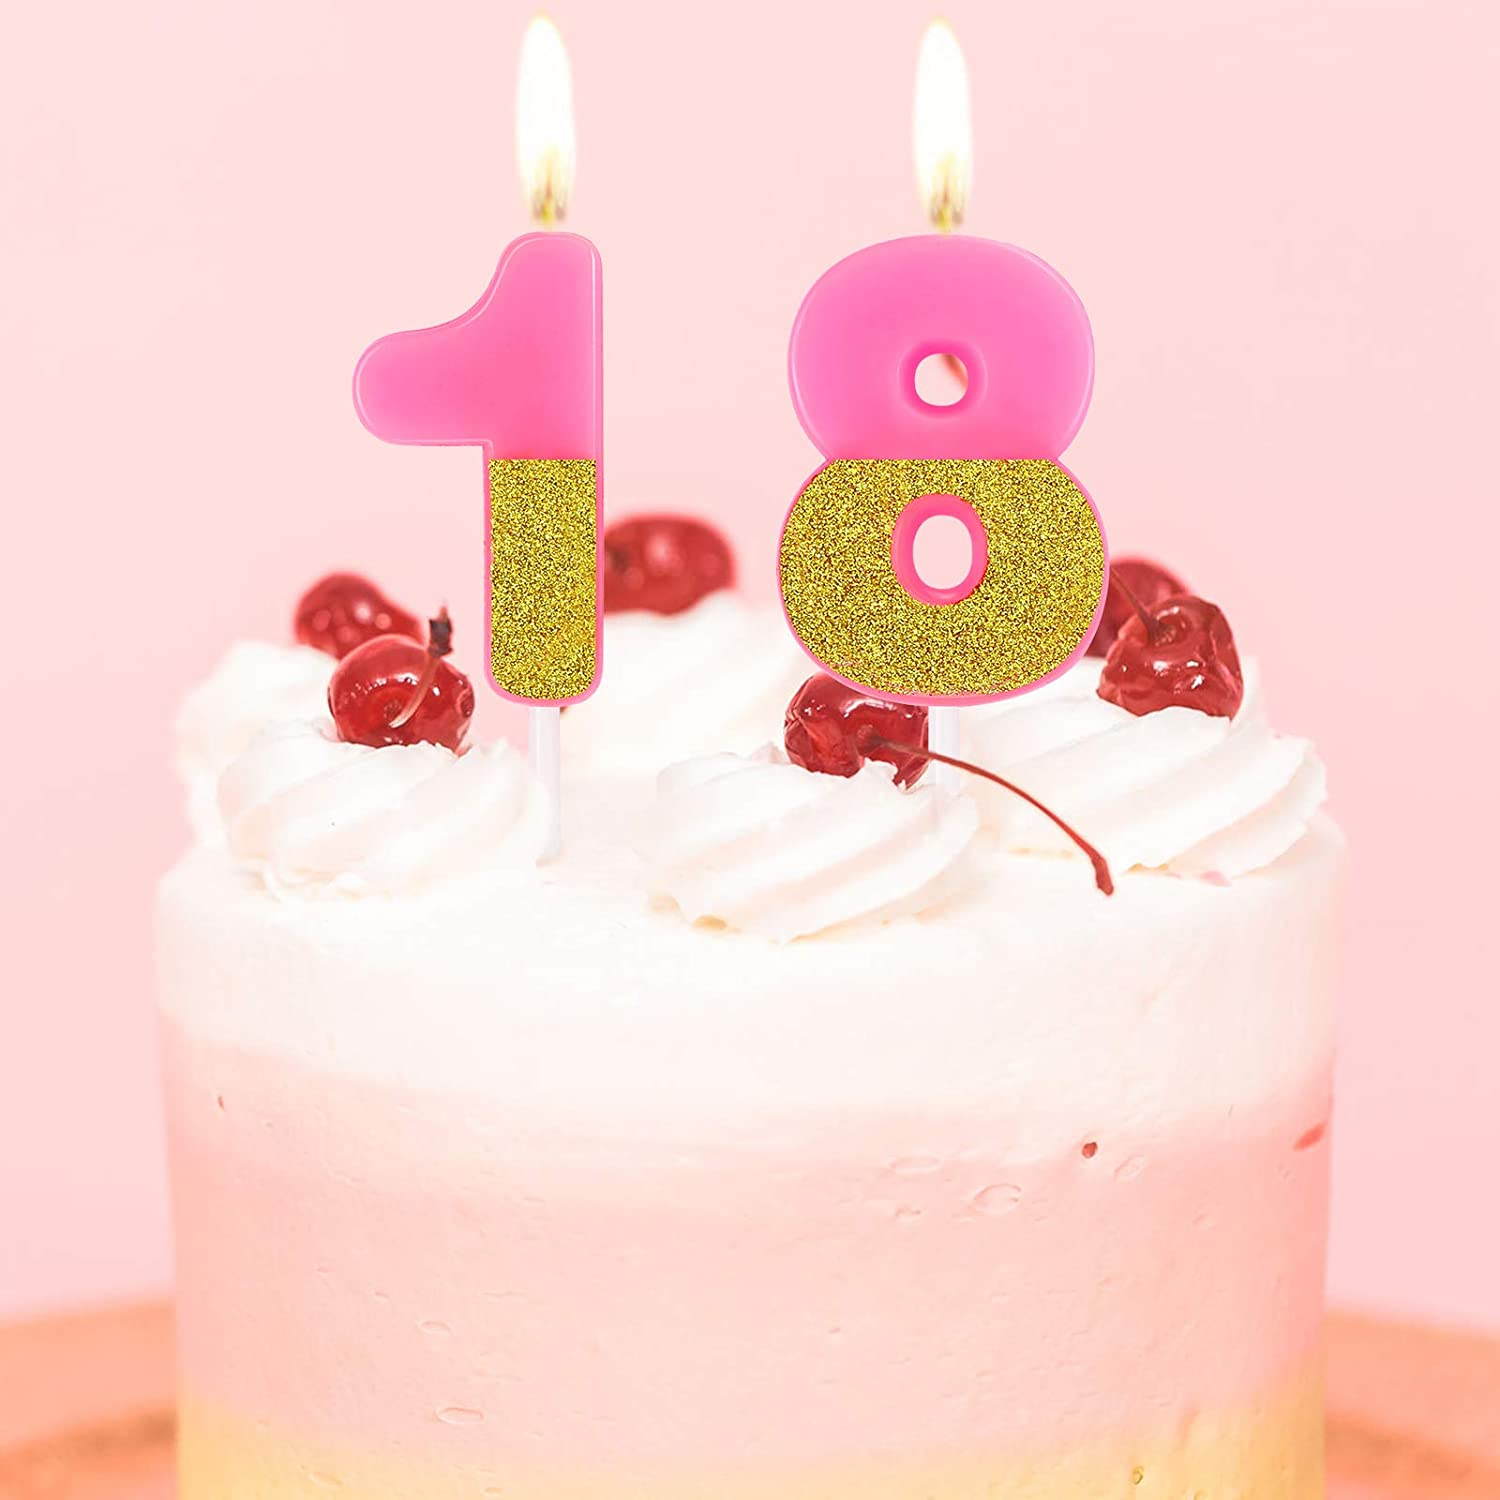 18th Birthday Cake Candles Glitter Numeral Candles Happy Birthday Cake Topper Decoration for Wedding Anniversary Celebration Supplies Blue